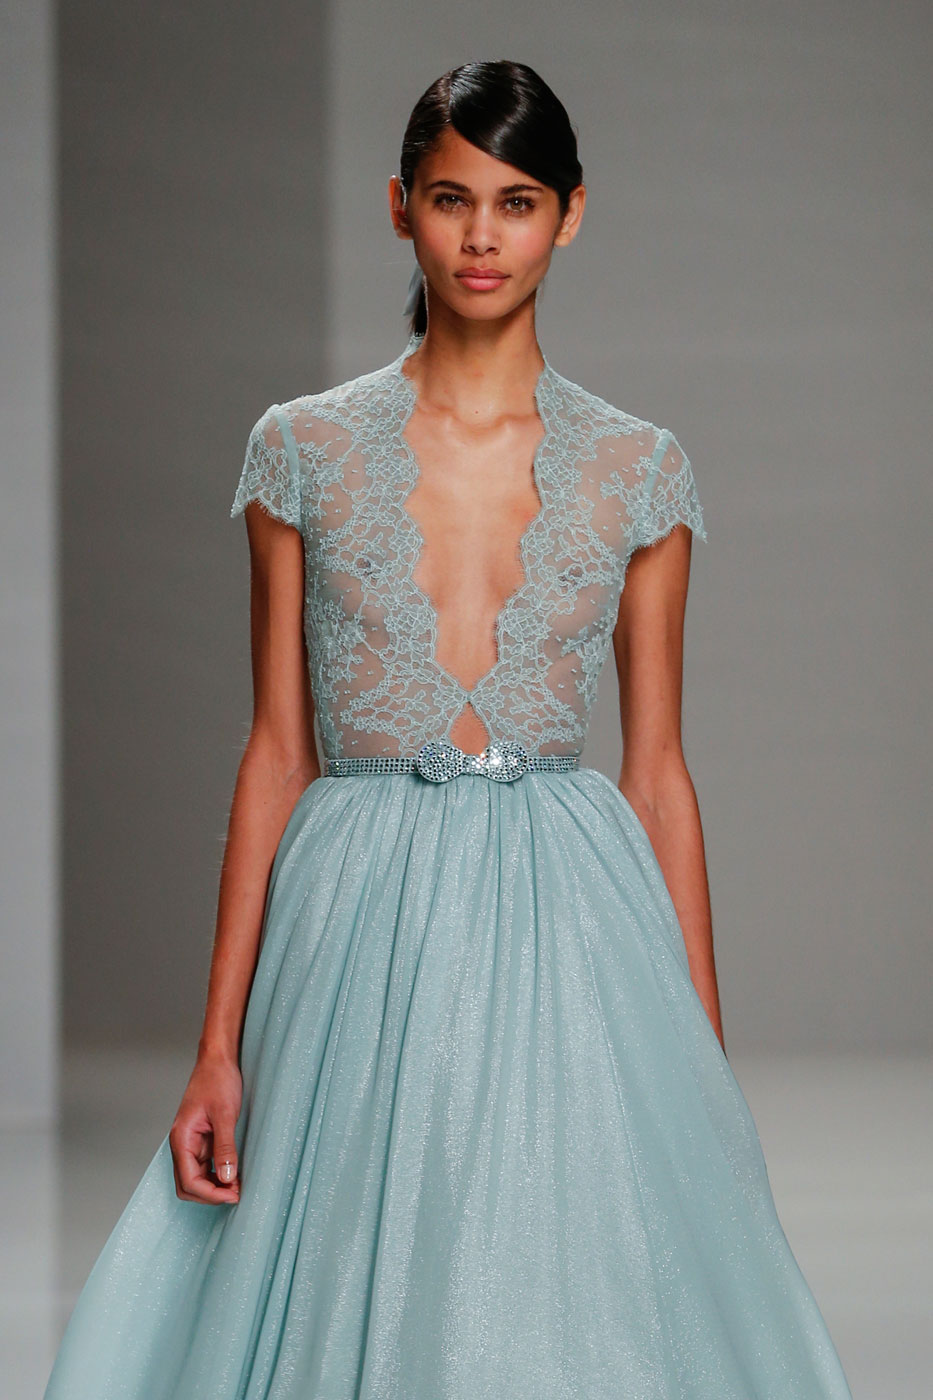 Georges-Hobeika-fashion-runway-show-haute-couture-paris-spring-2015-the-impression-42